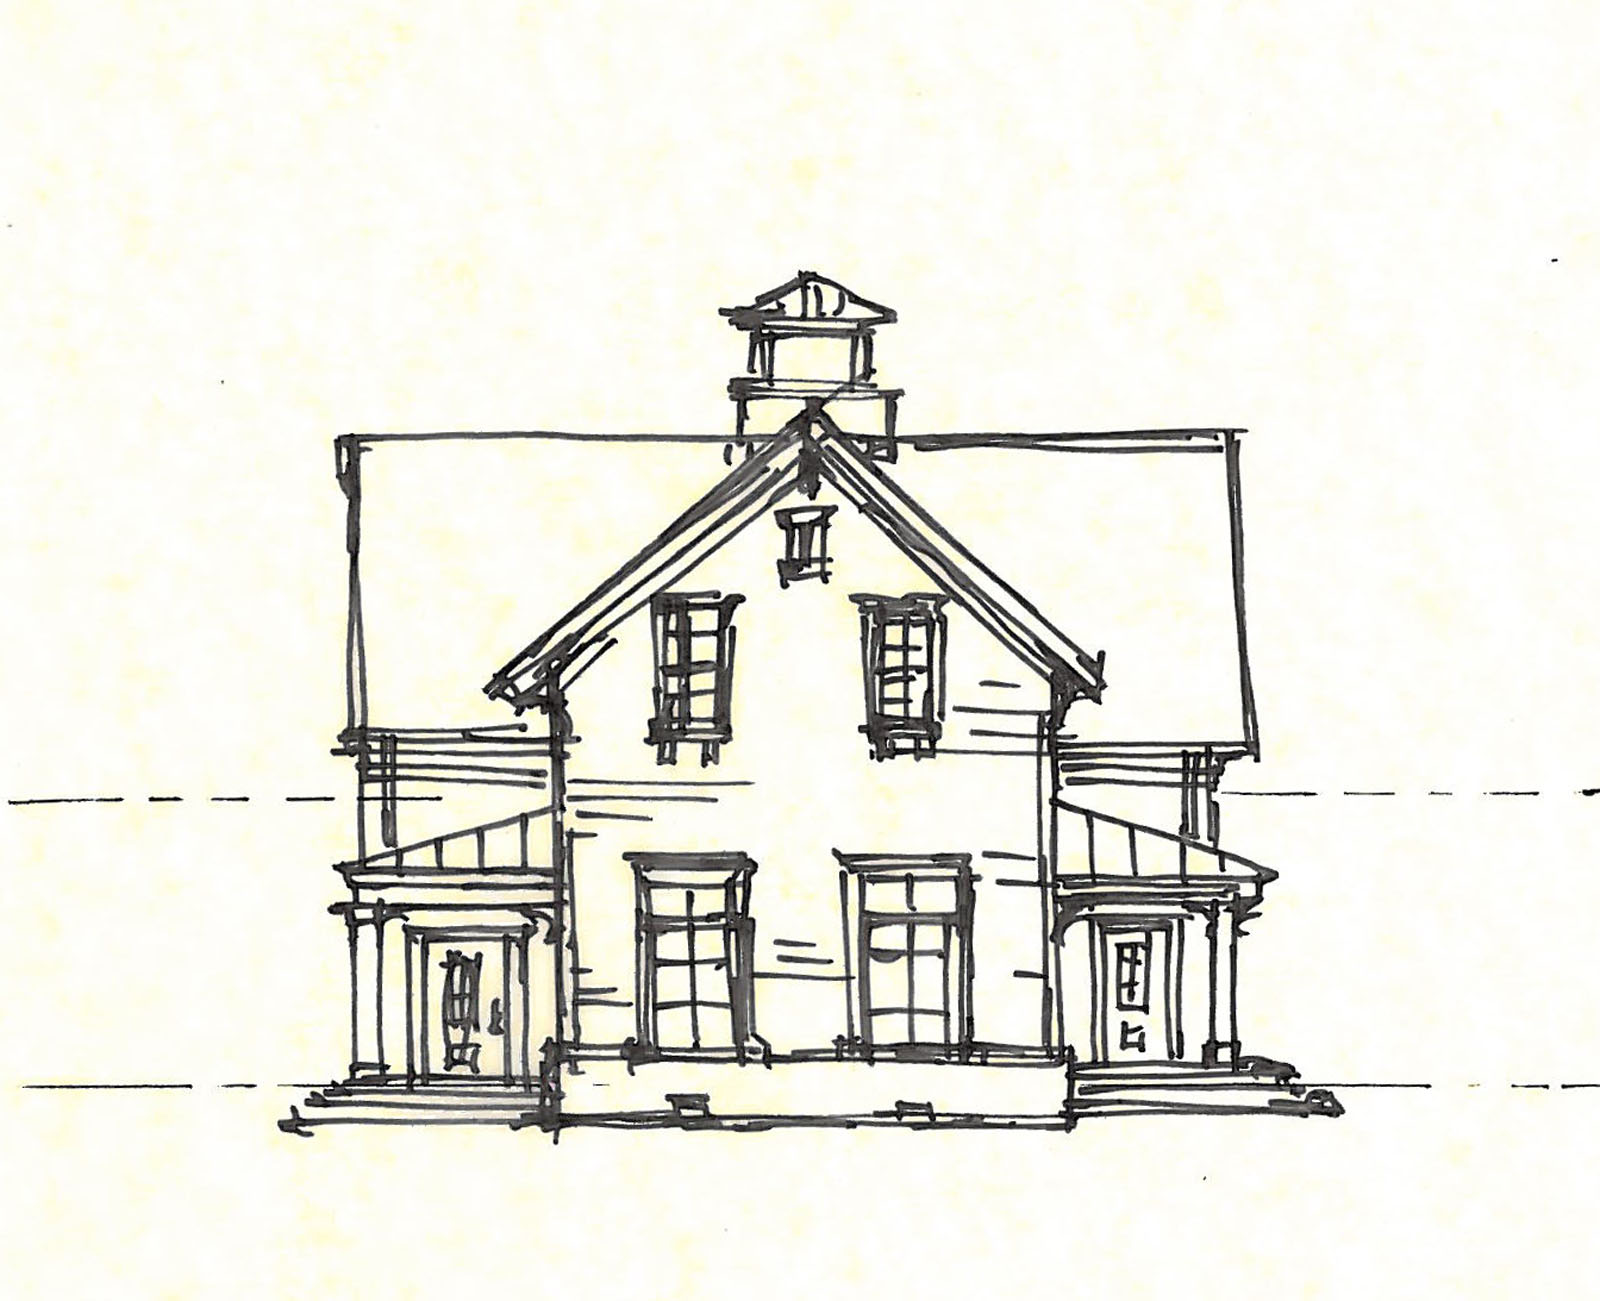 As A Residential Architect In Nashville We Can Help Evaluate Potential Sites And Explore Options